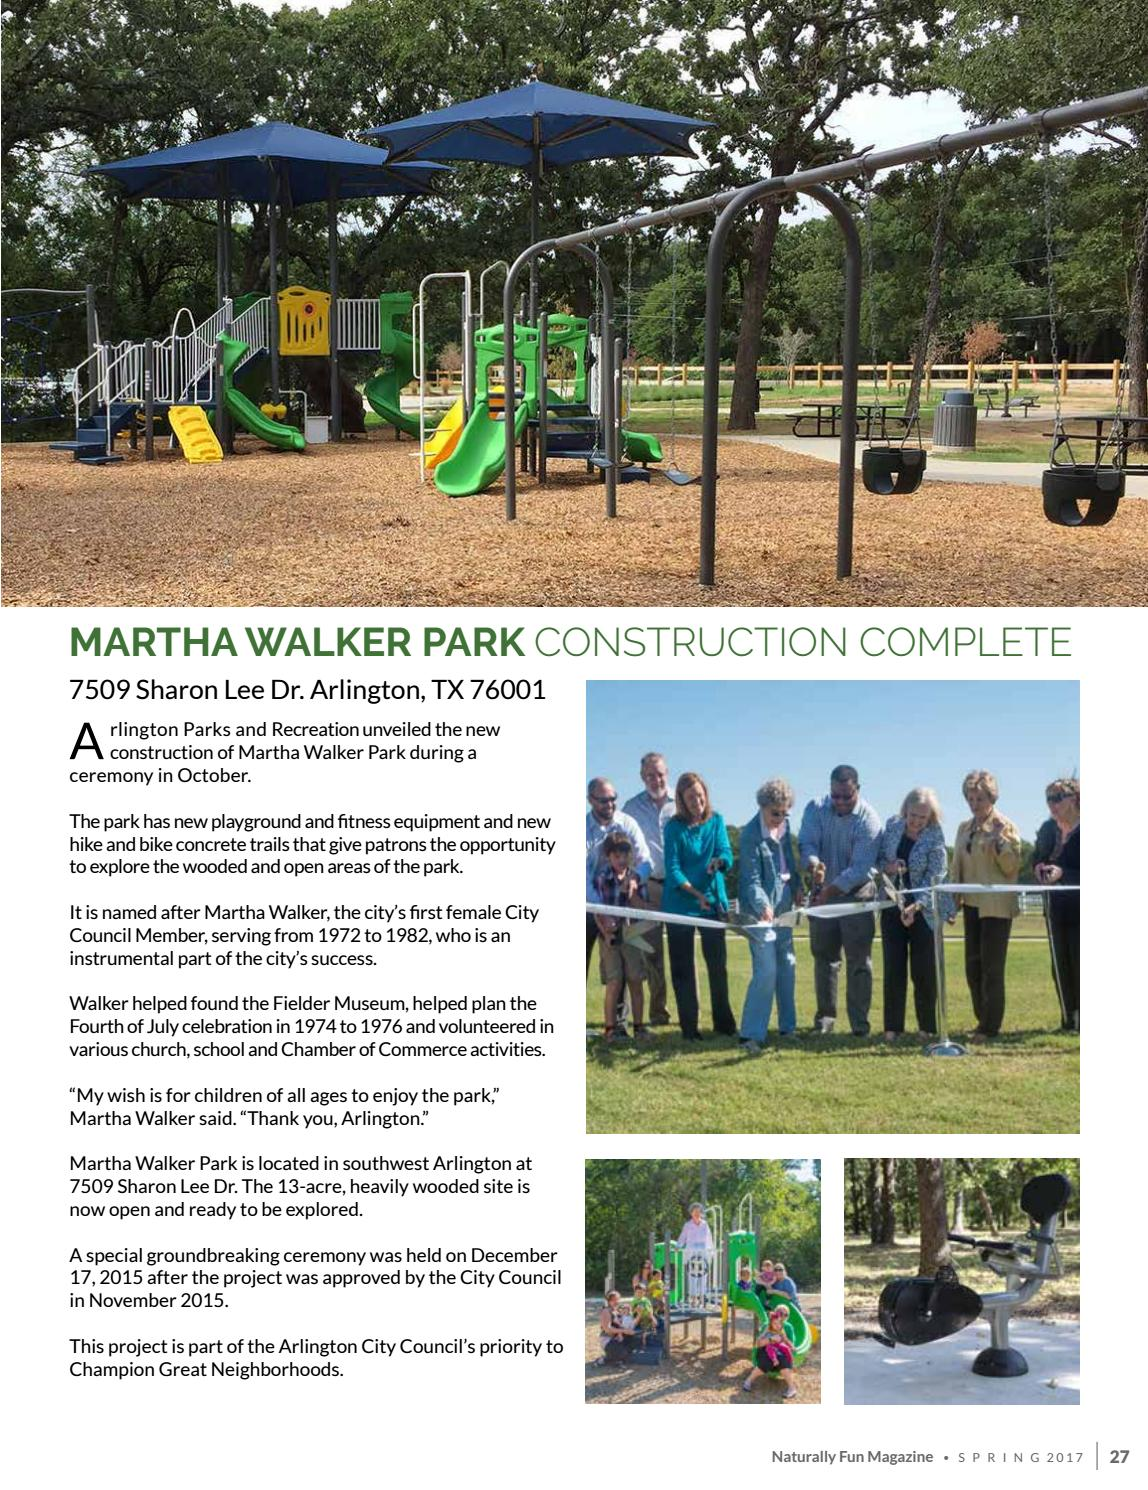 Spring 2017 - Naturally Fun Magazine by Arlington Parks and